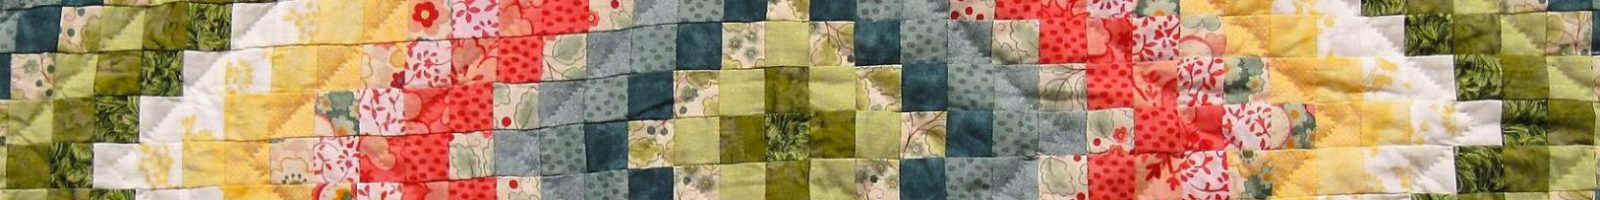 scrap quilts for sale from amish quilters in pa